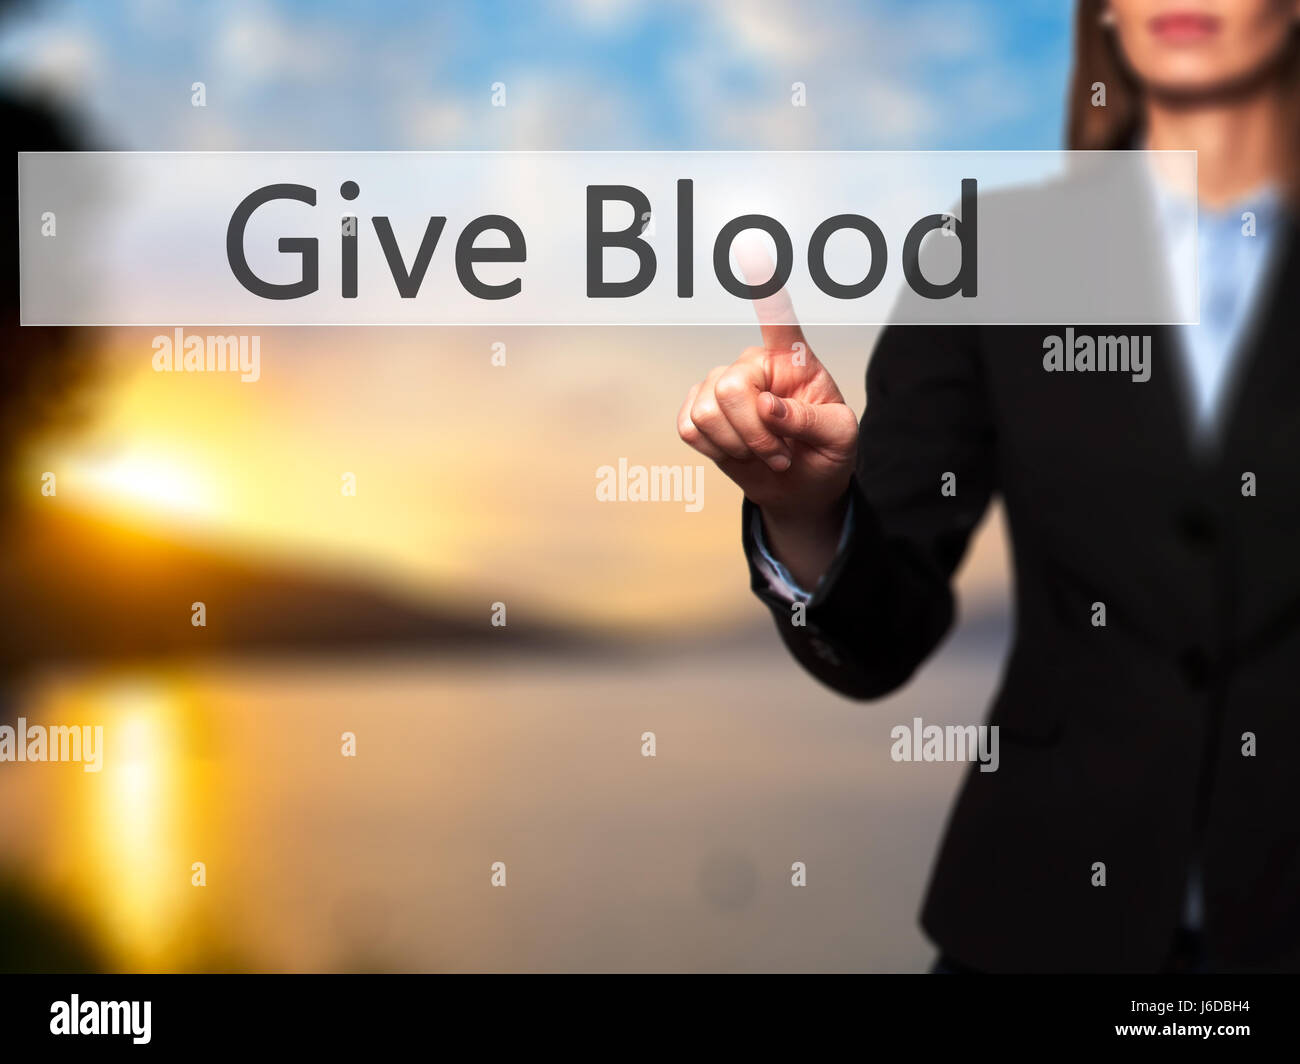 Give Blood - Businesswoman hand pressing button on touch screen interface. Business, technology, internet concept. - Stock Image